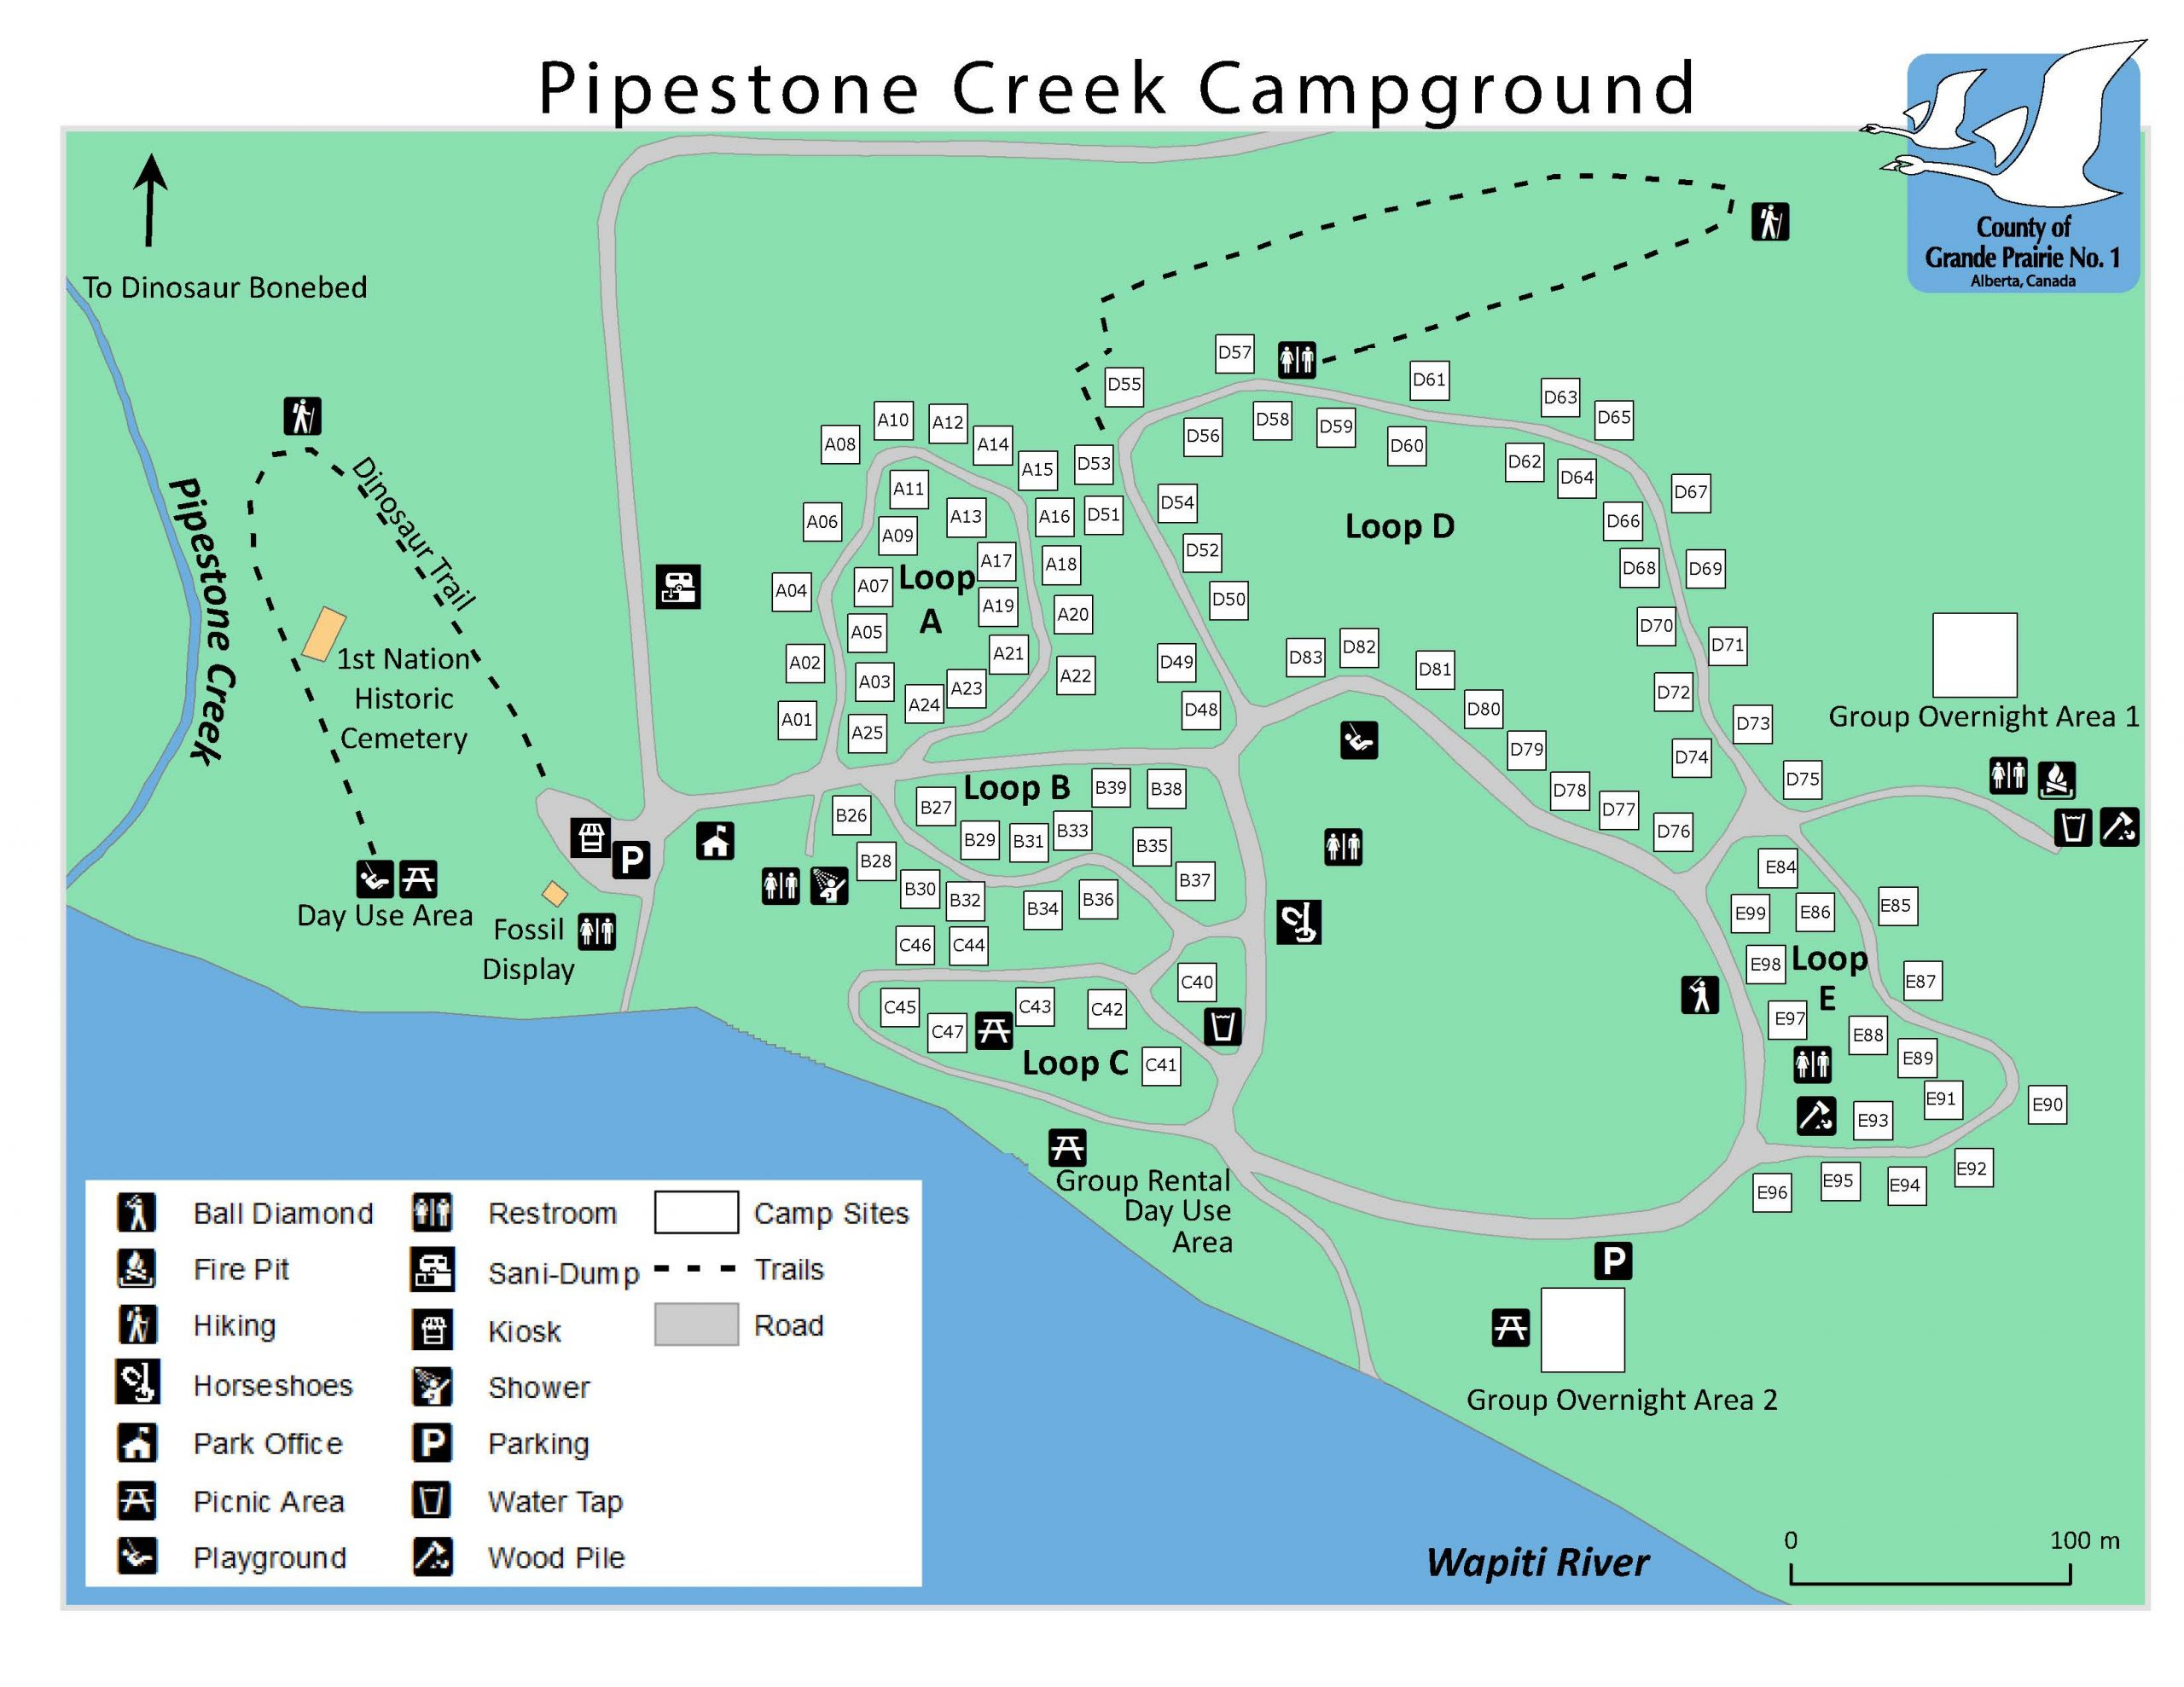 Pipestone Creek Campground online booking pilot project